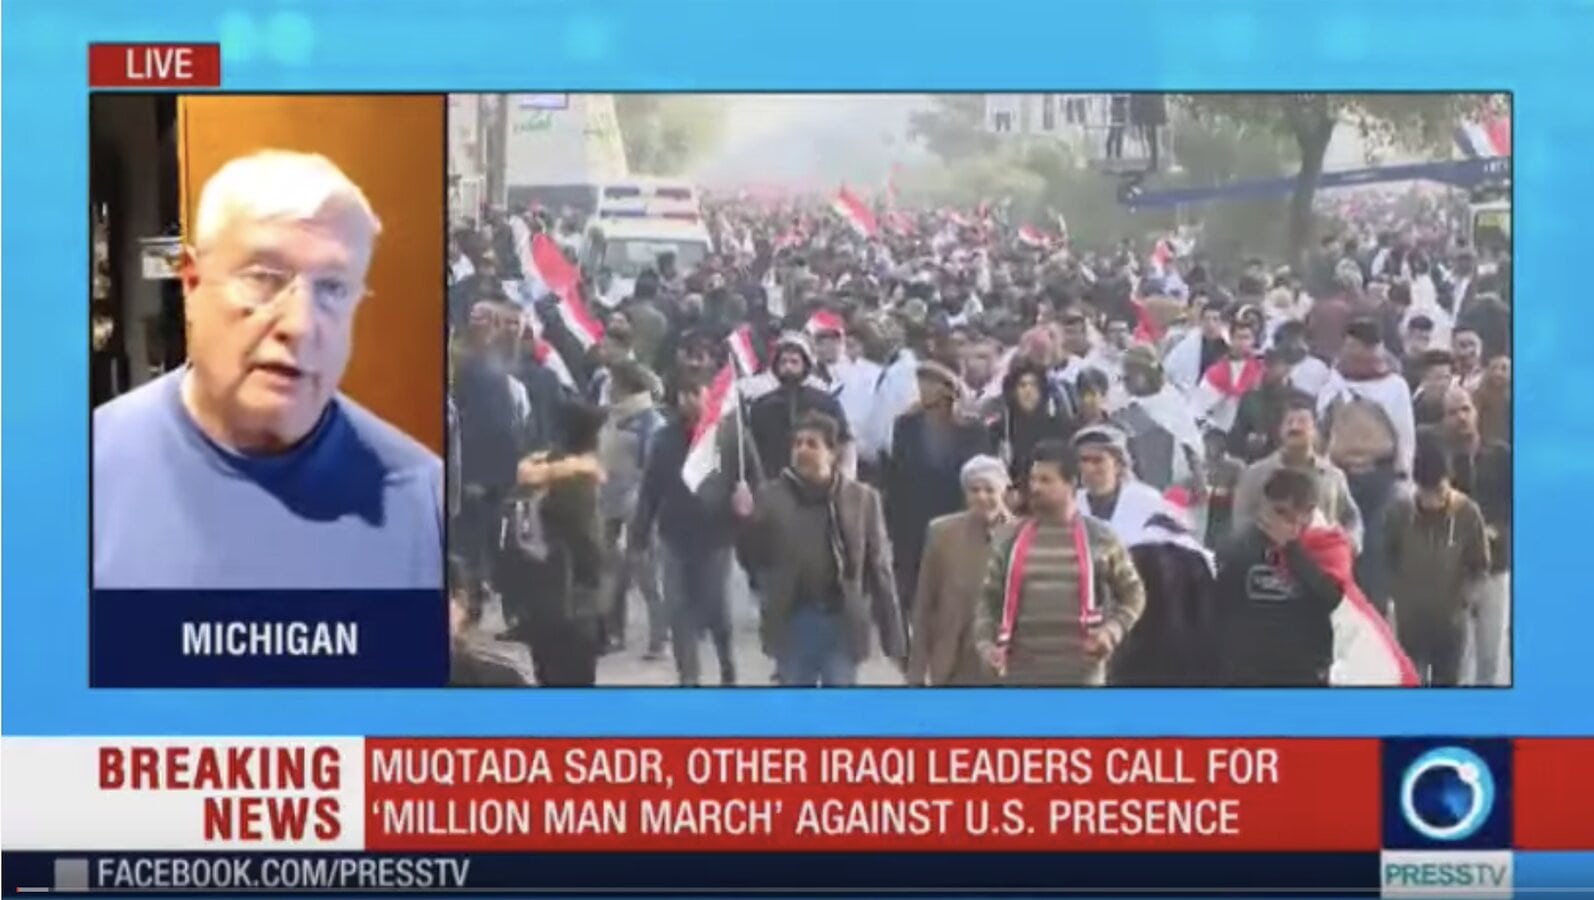 Total US Censorship: Demonstrations in Iraq for US Removal, Play by Play by co-Host Gordon Duff on Press TV